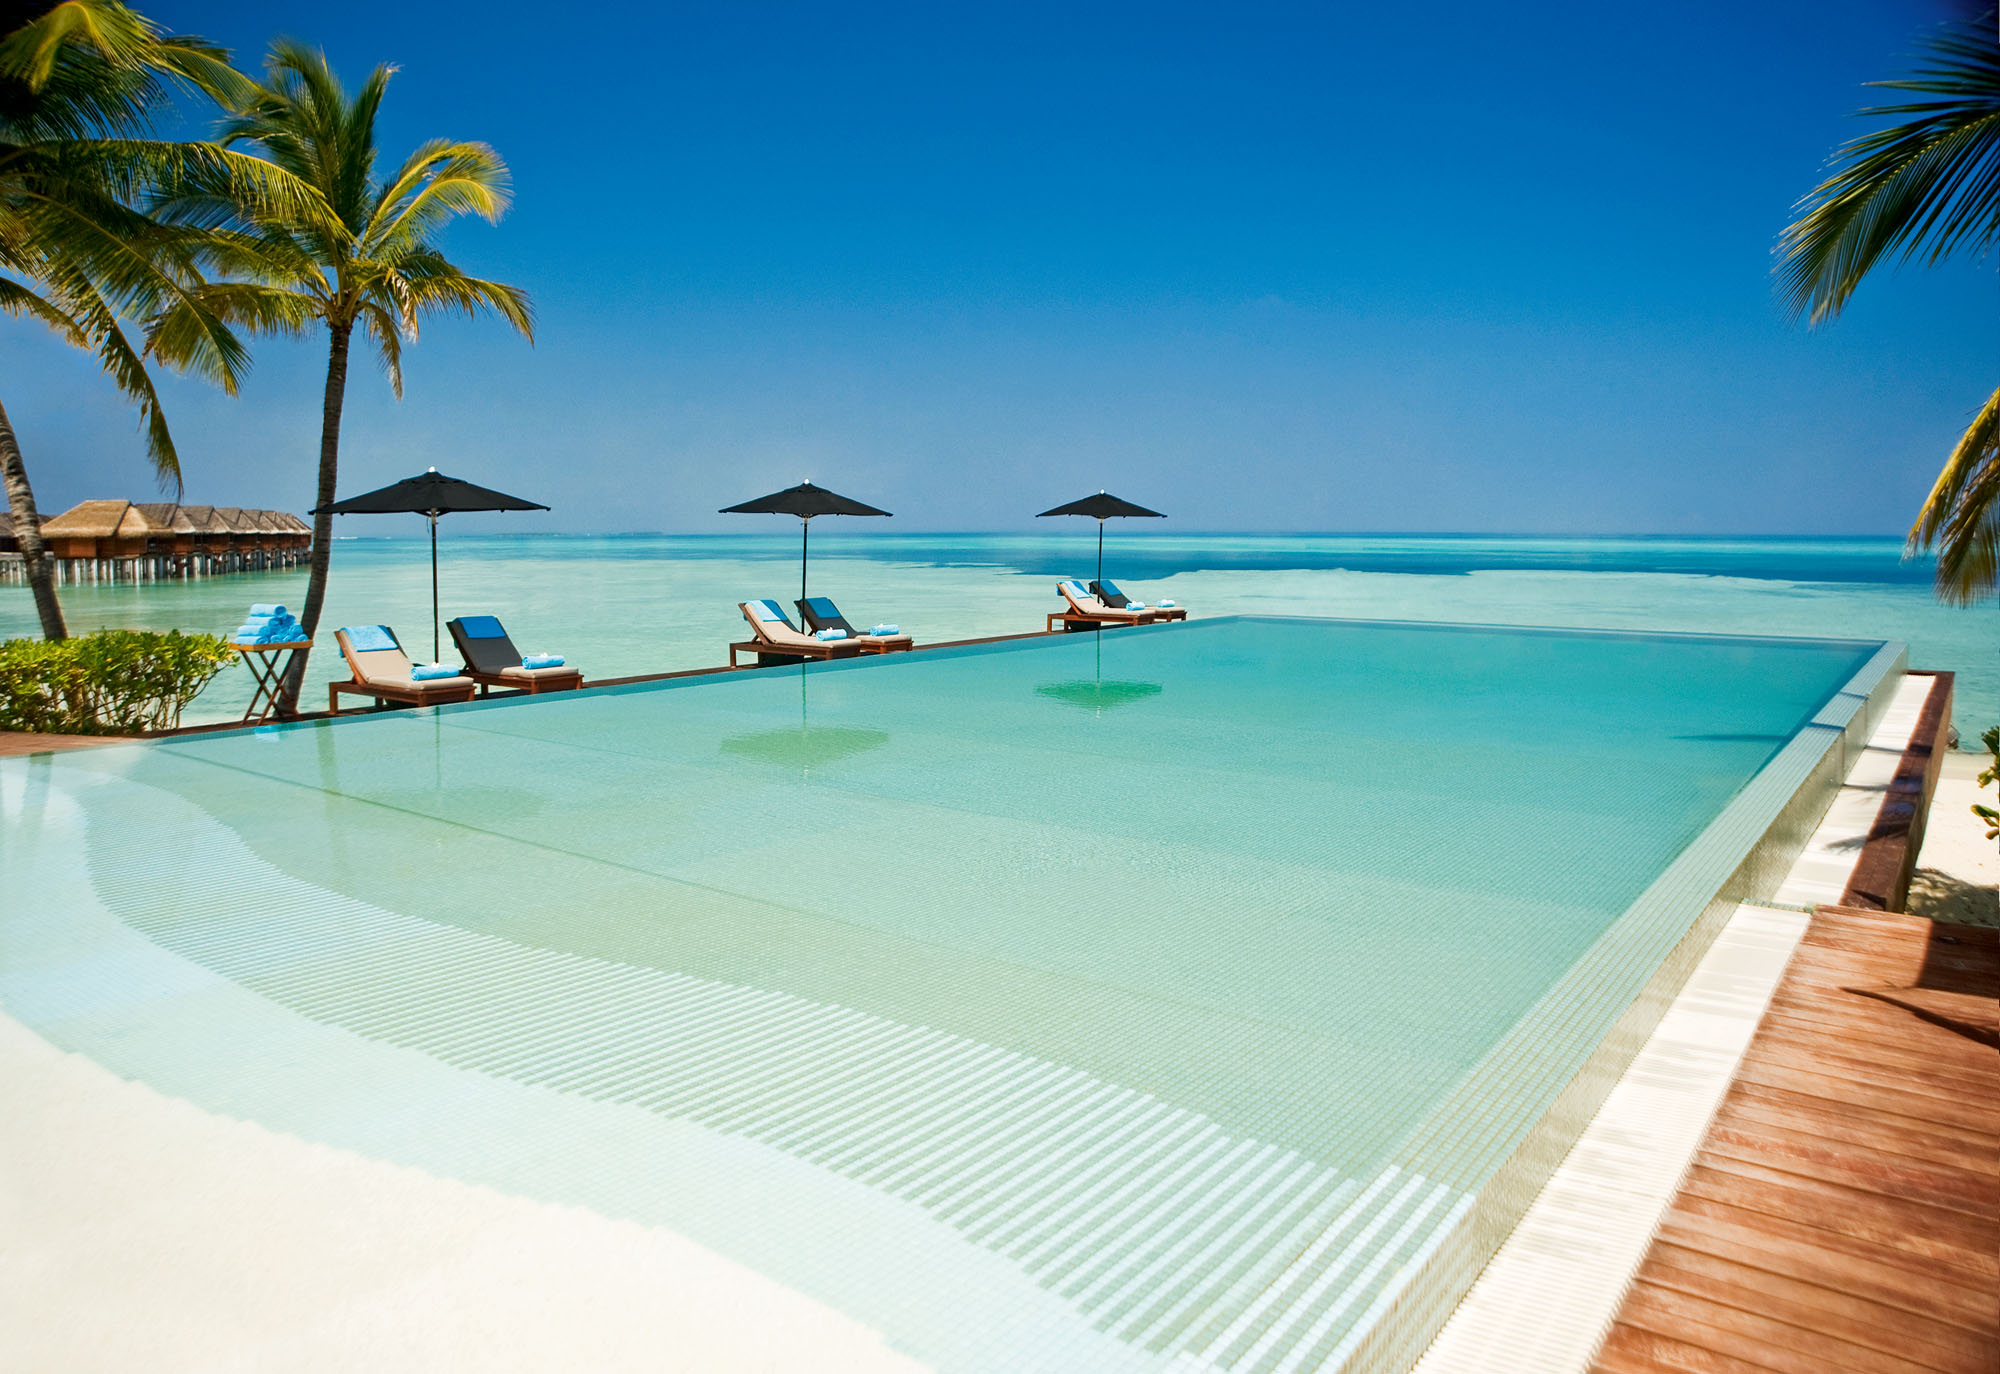 Four Infinity Pools in the Maldives